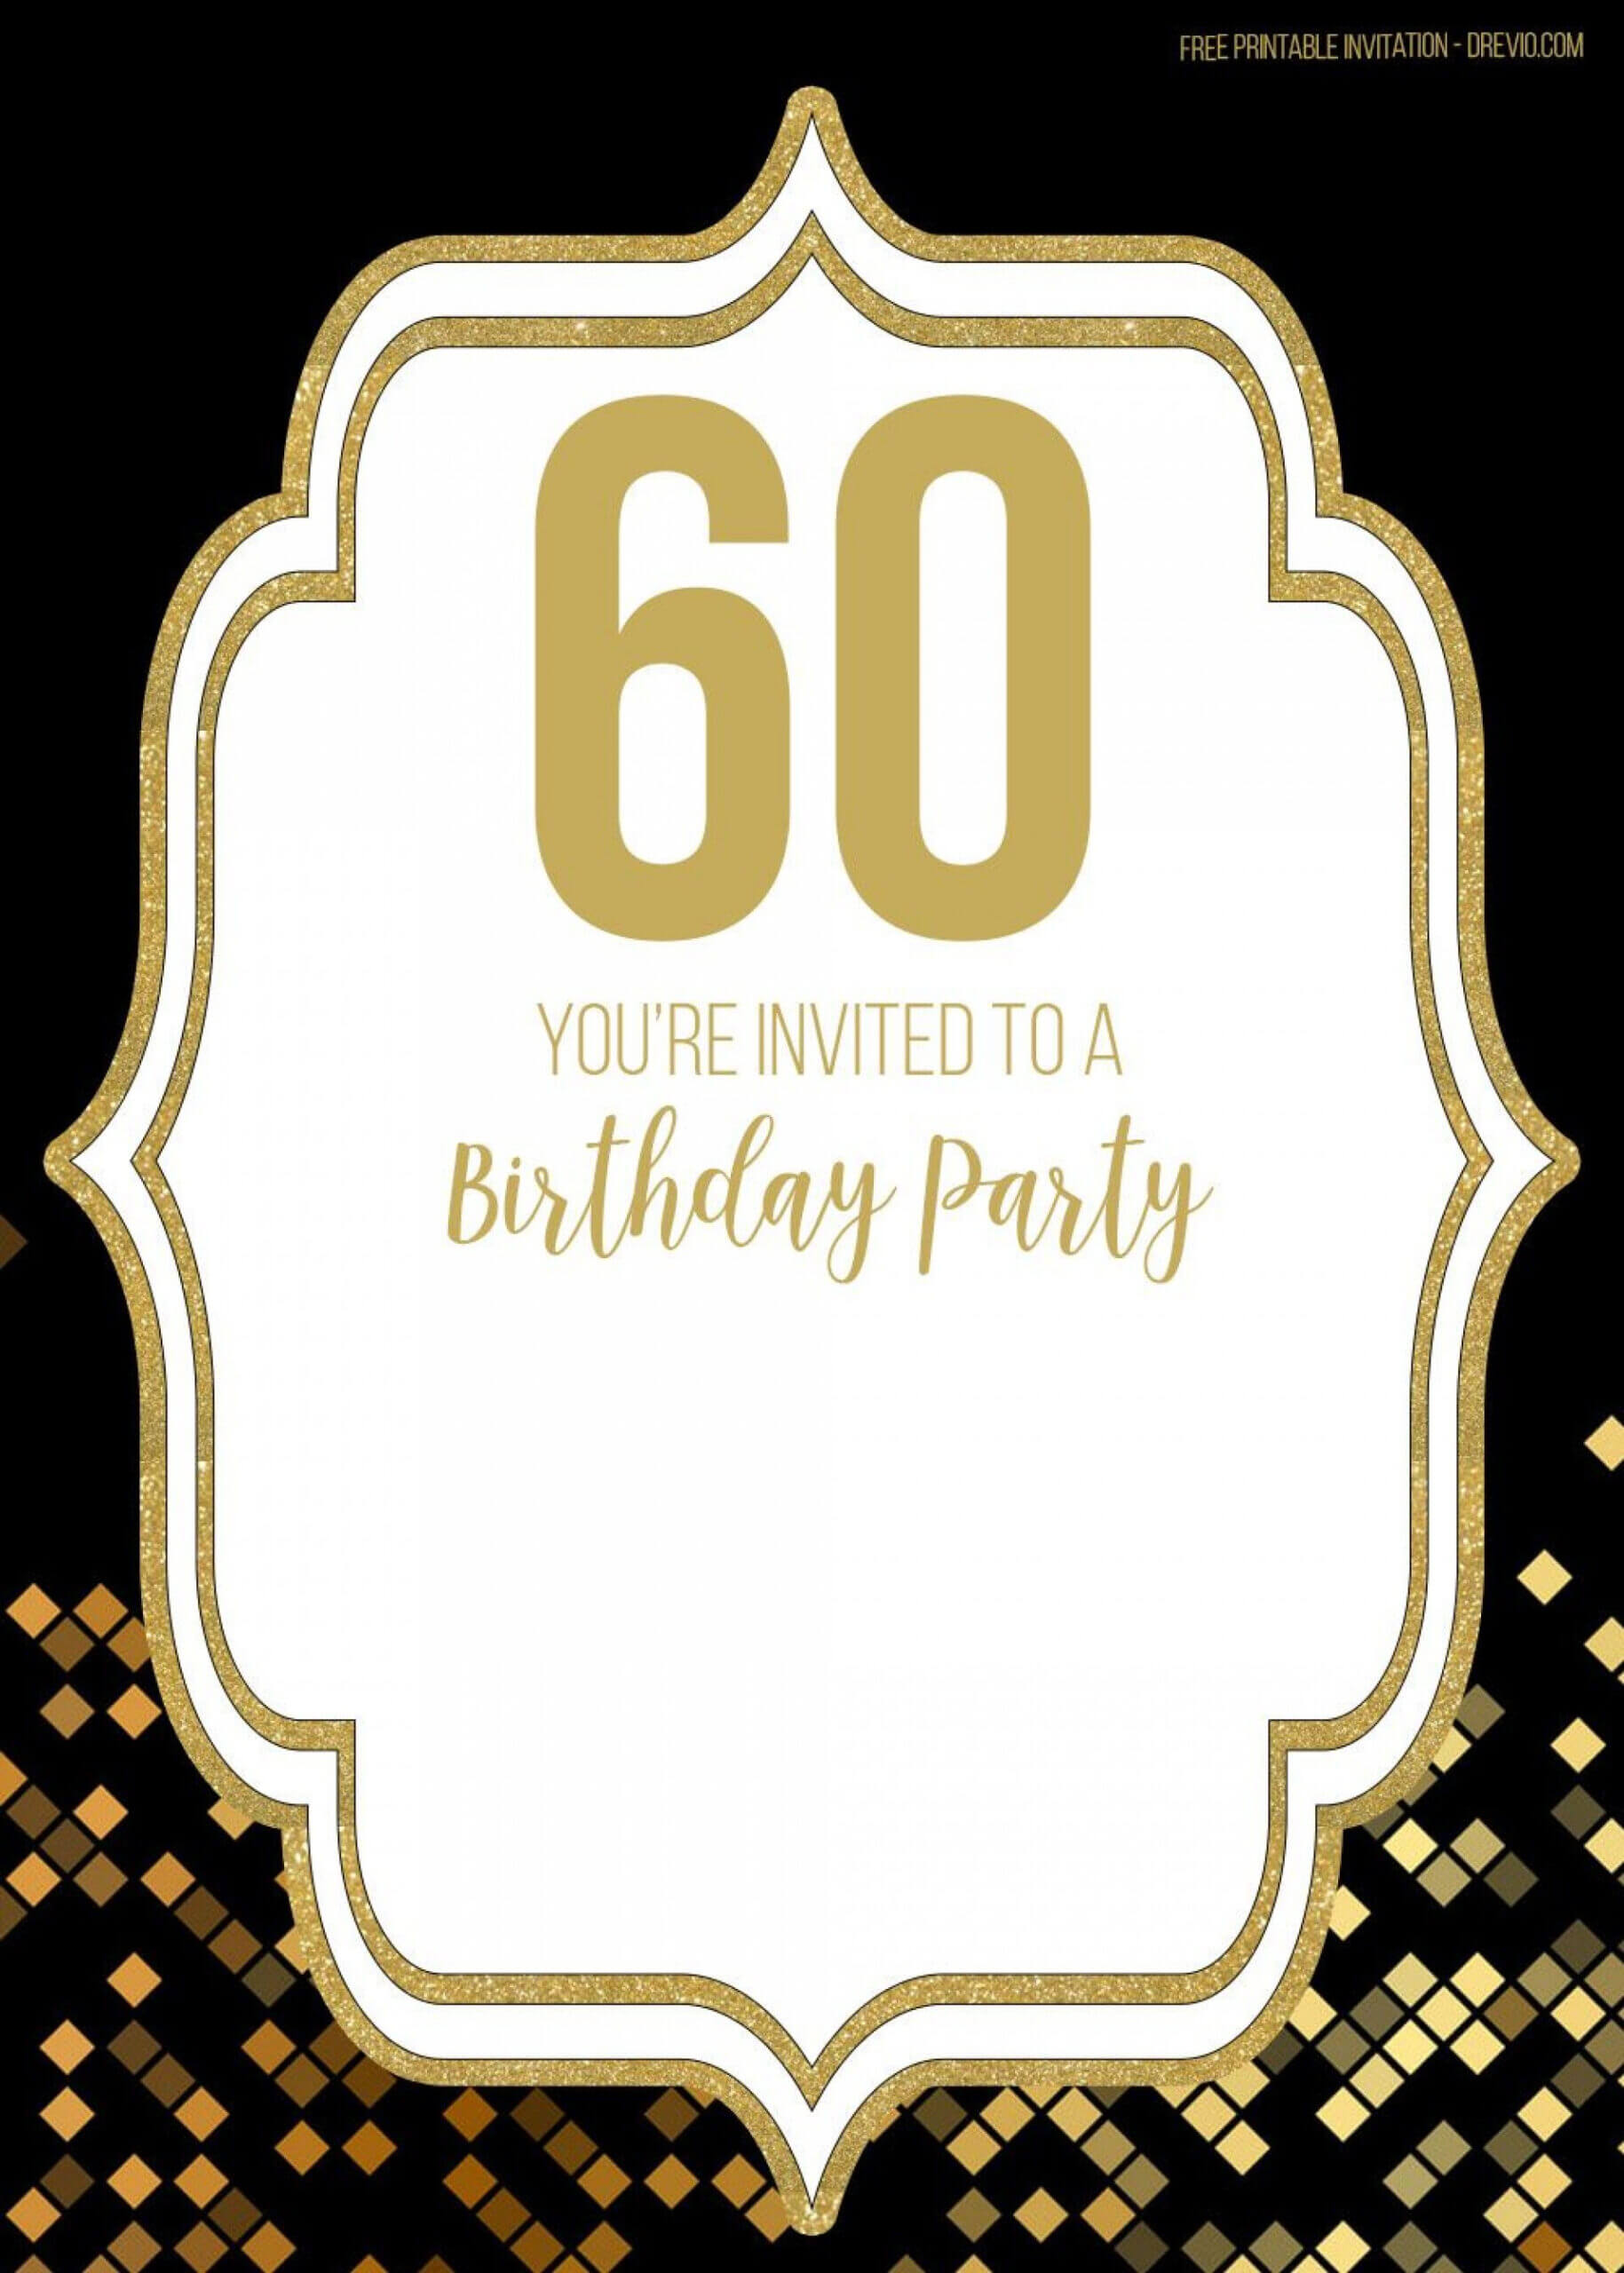 003 Template Ideas 60Th Birthday Invitations Marvelous 60 Throughout 60Th Birthday Party Invitation Template